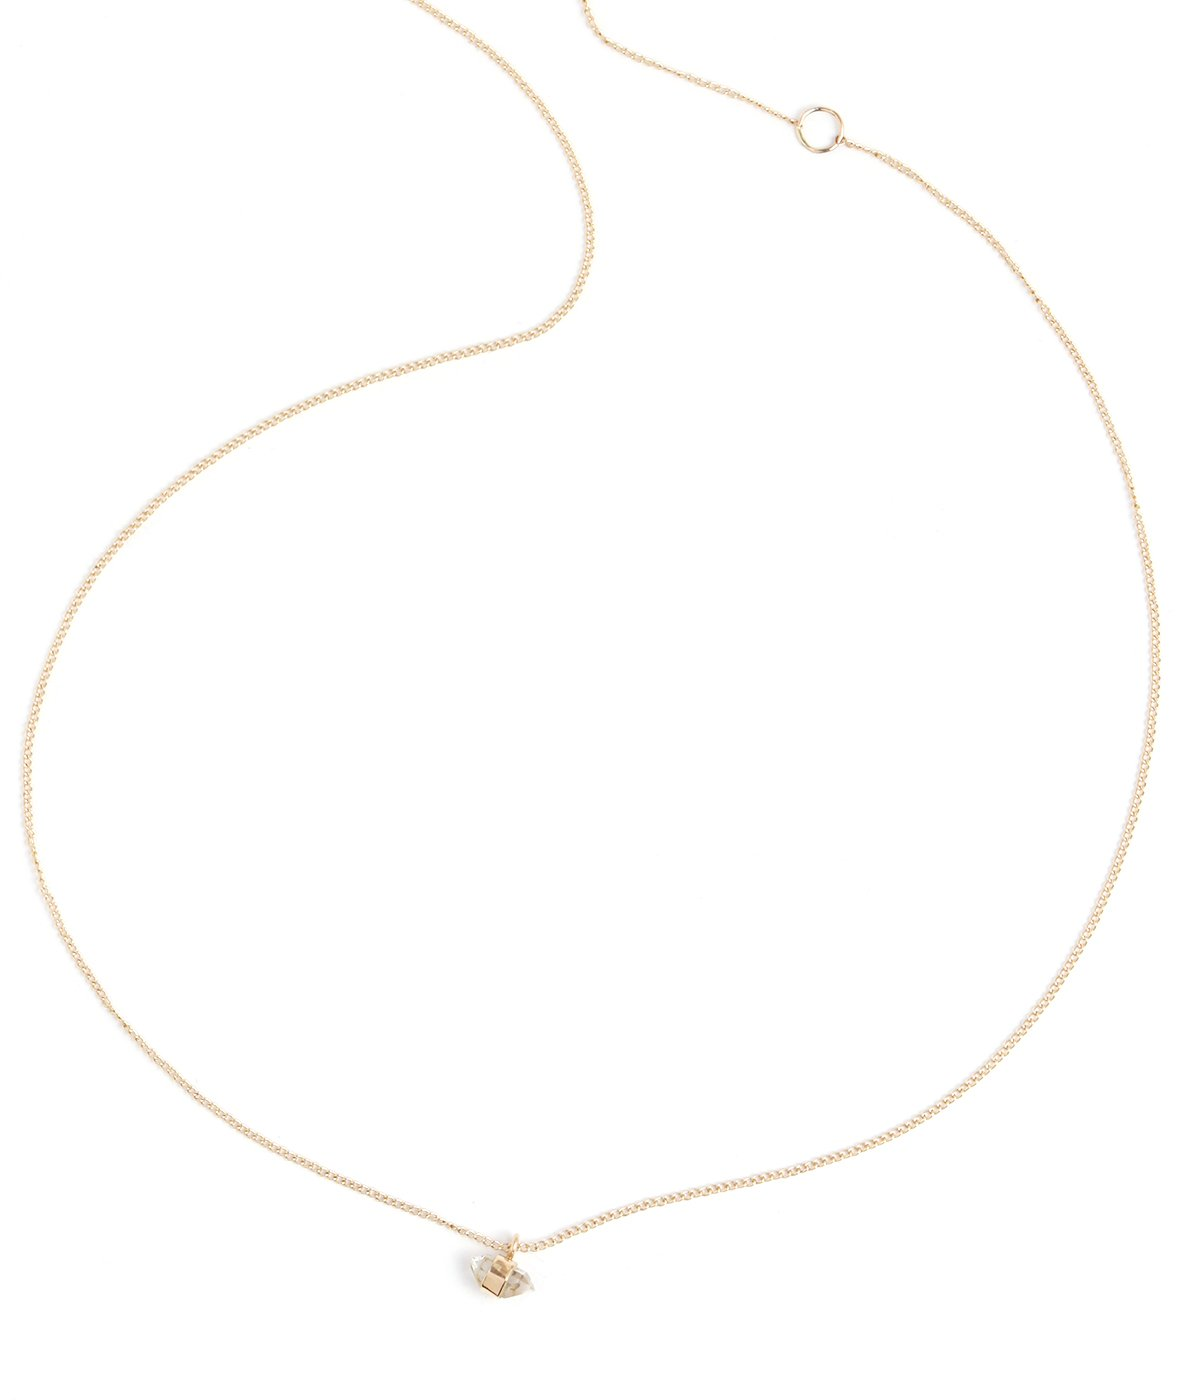 Single Drop Mini Herkimer Necklace - Melissa Joy Manning Jewelry